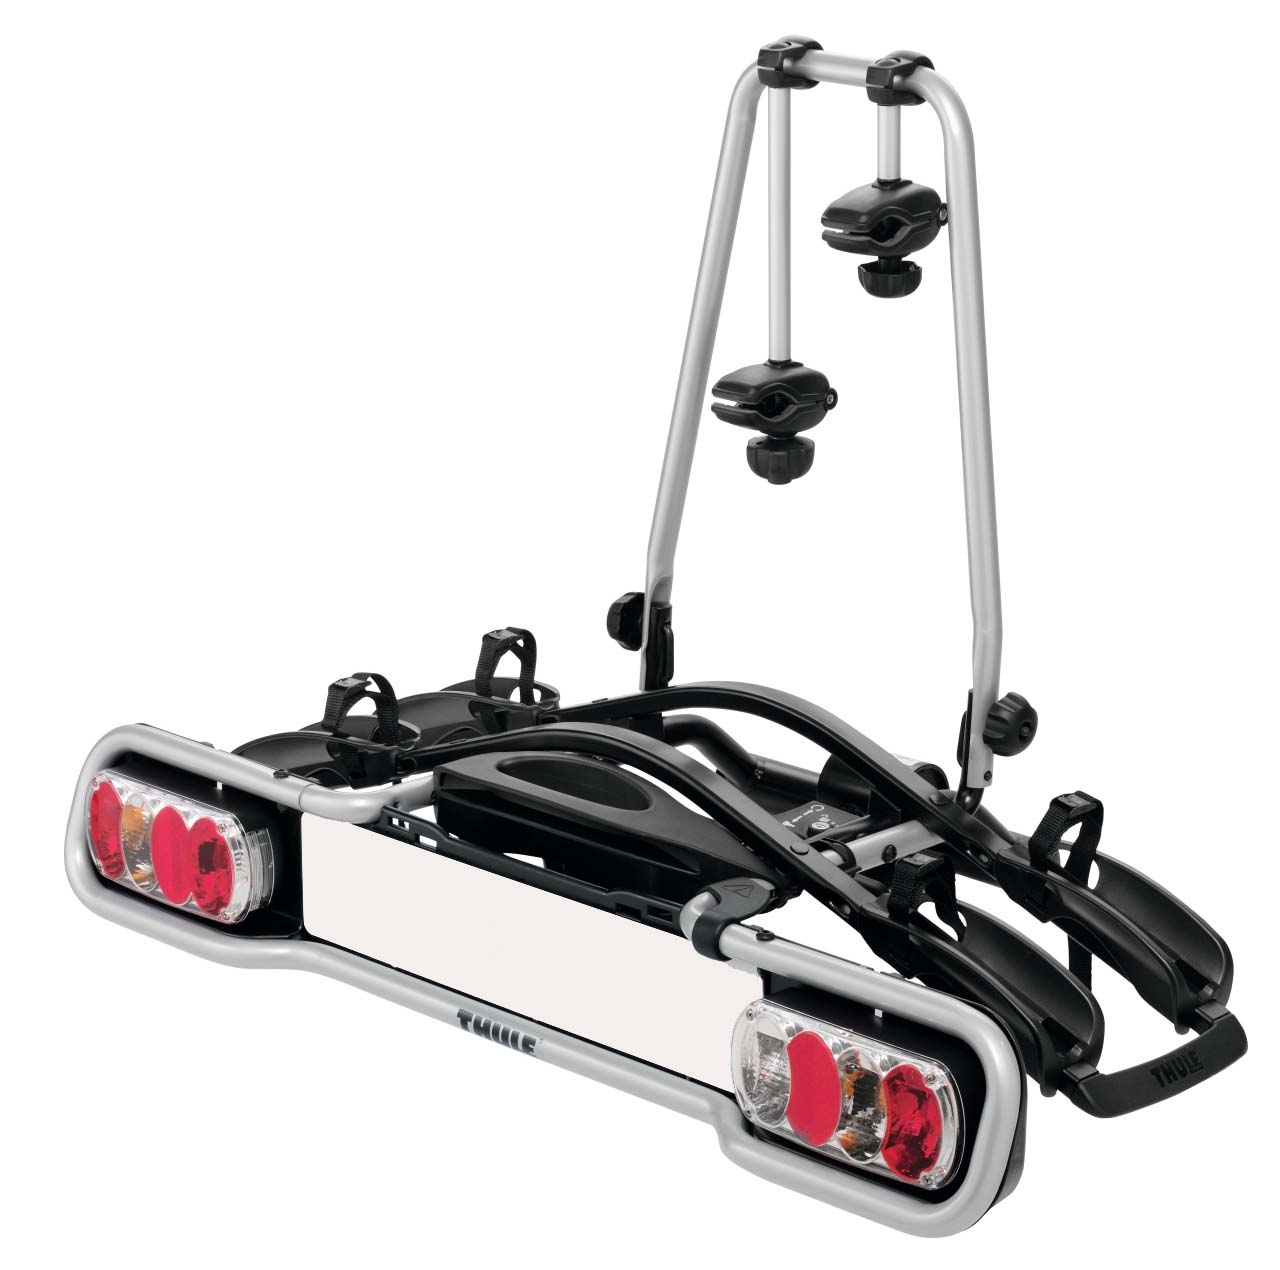 renault genuine thule euroride 941 towbar mounted 2 bike. Black Bedroom Furniture Sets. Home Design Ideas